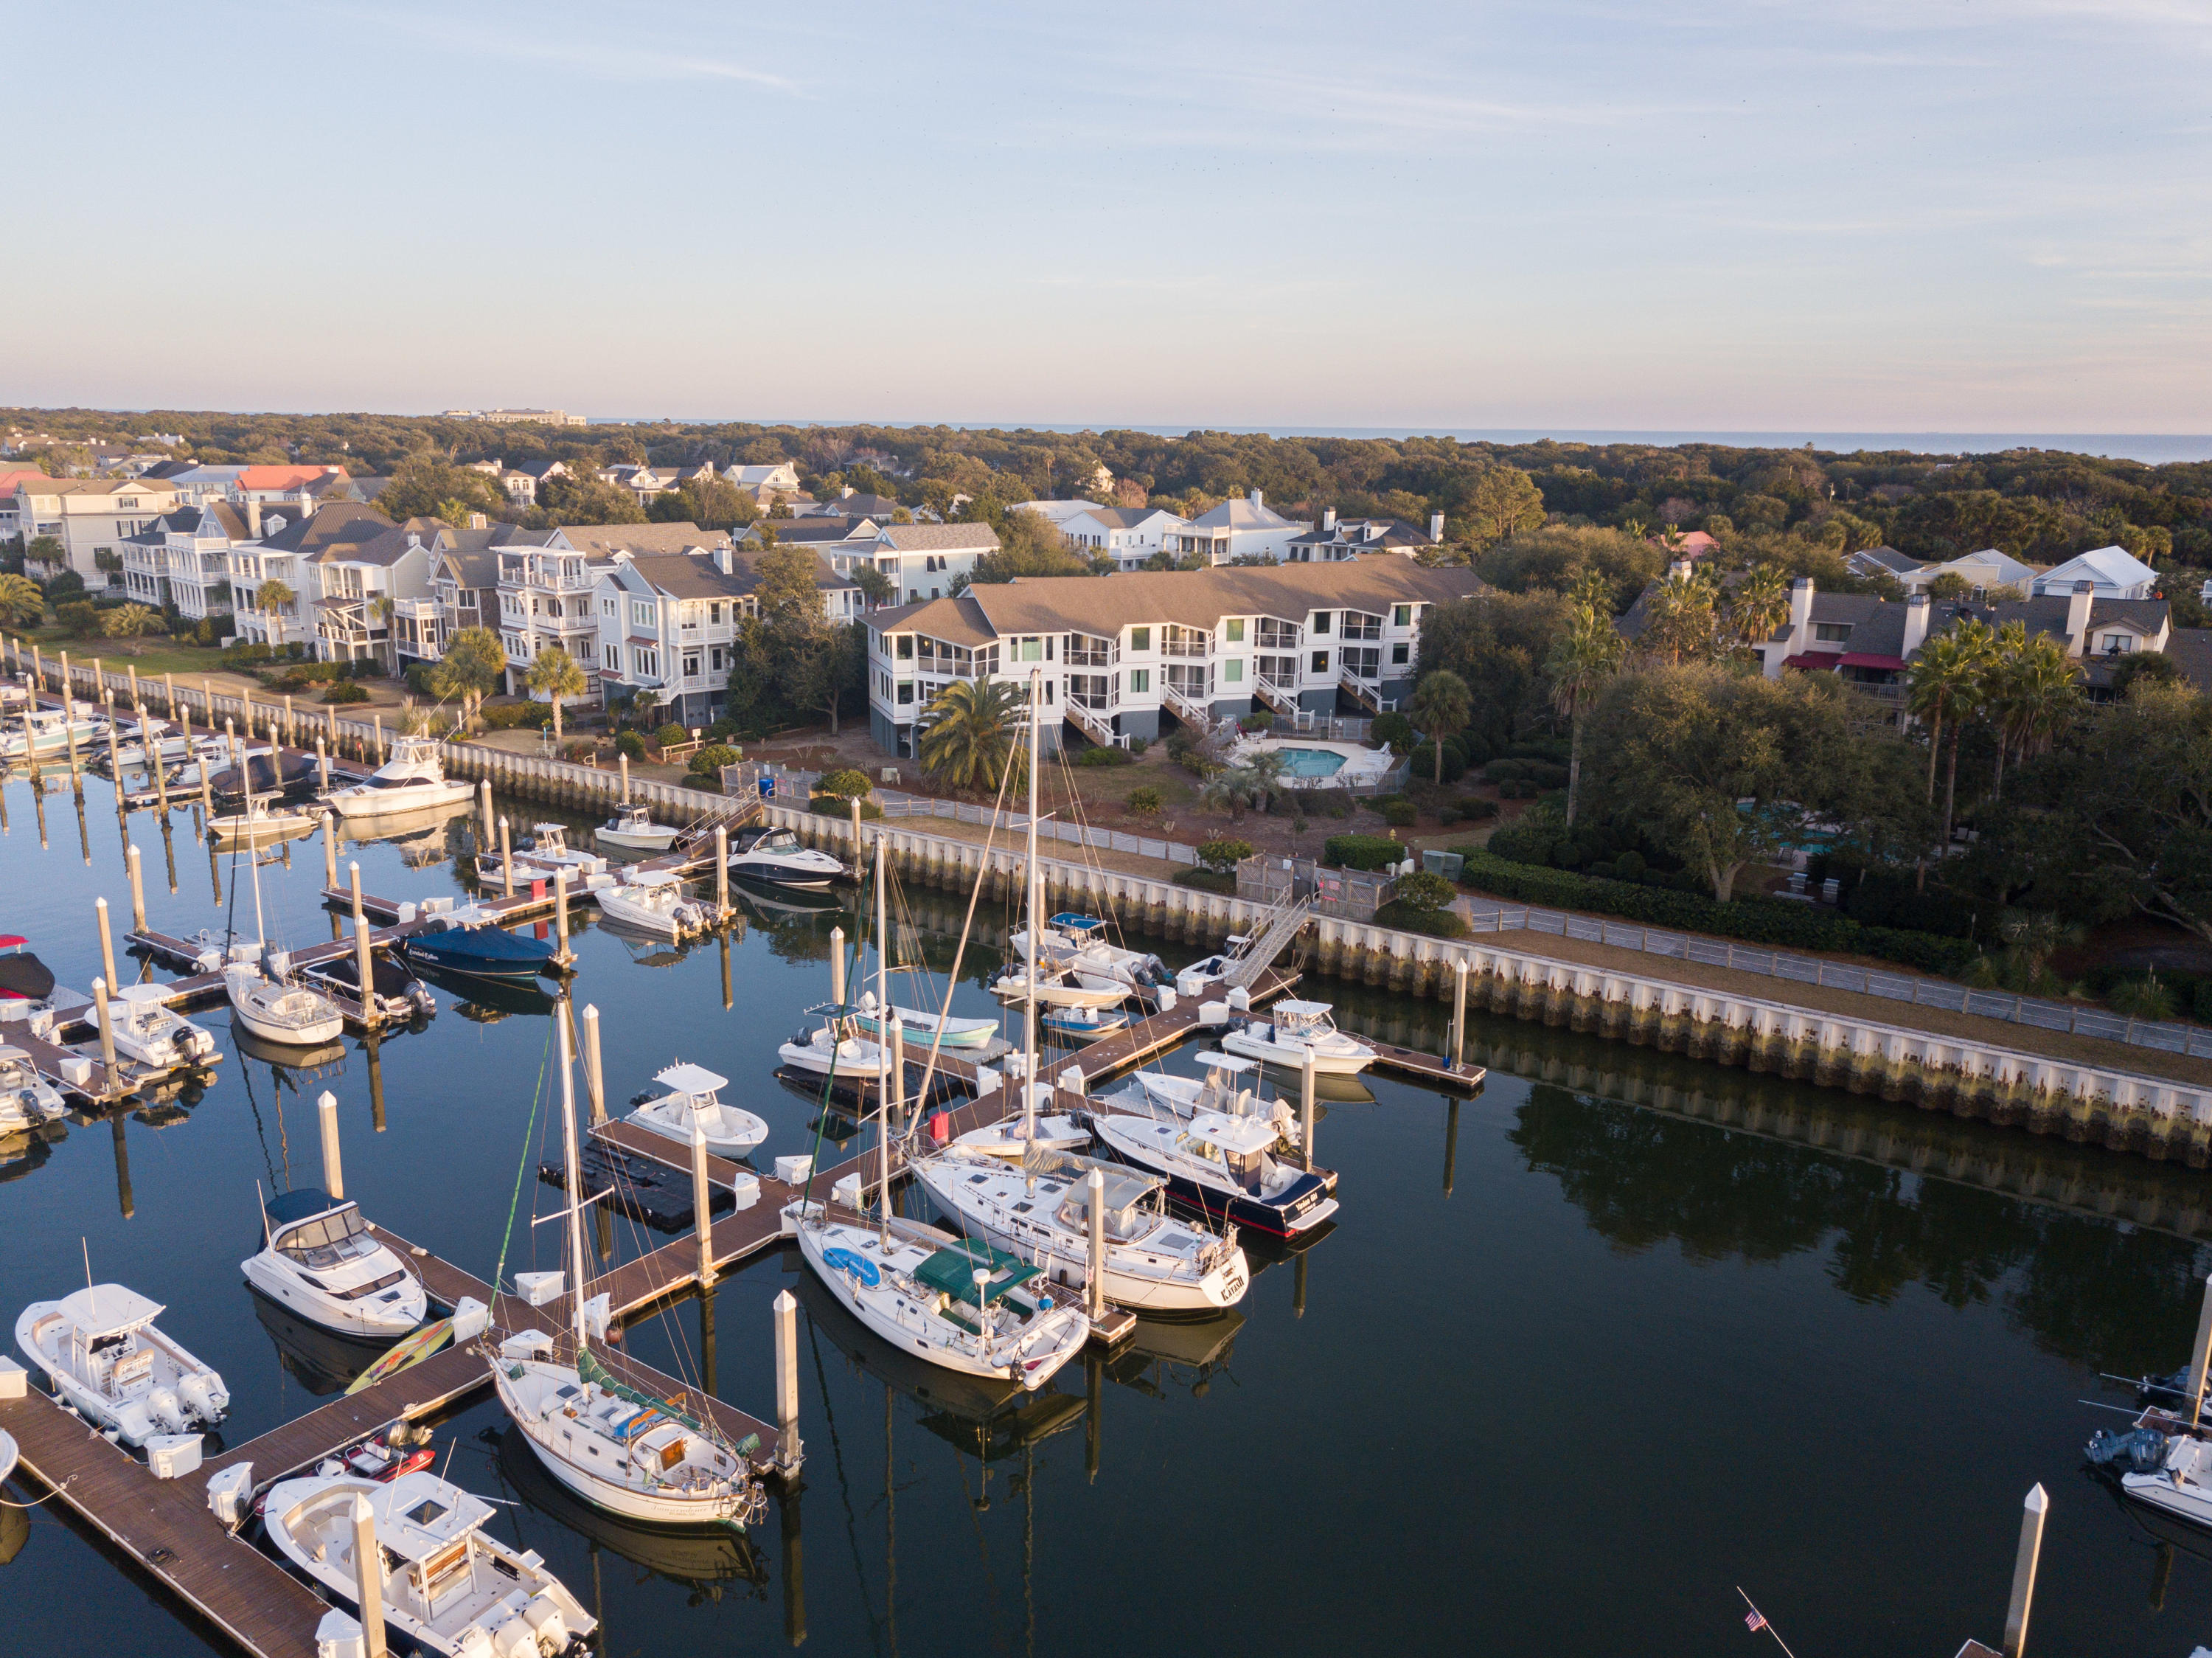 Wild Dunes Yacht Harbor Homes For Sale - 505 Yacht Harbor, Isle of Palms, SC - 12